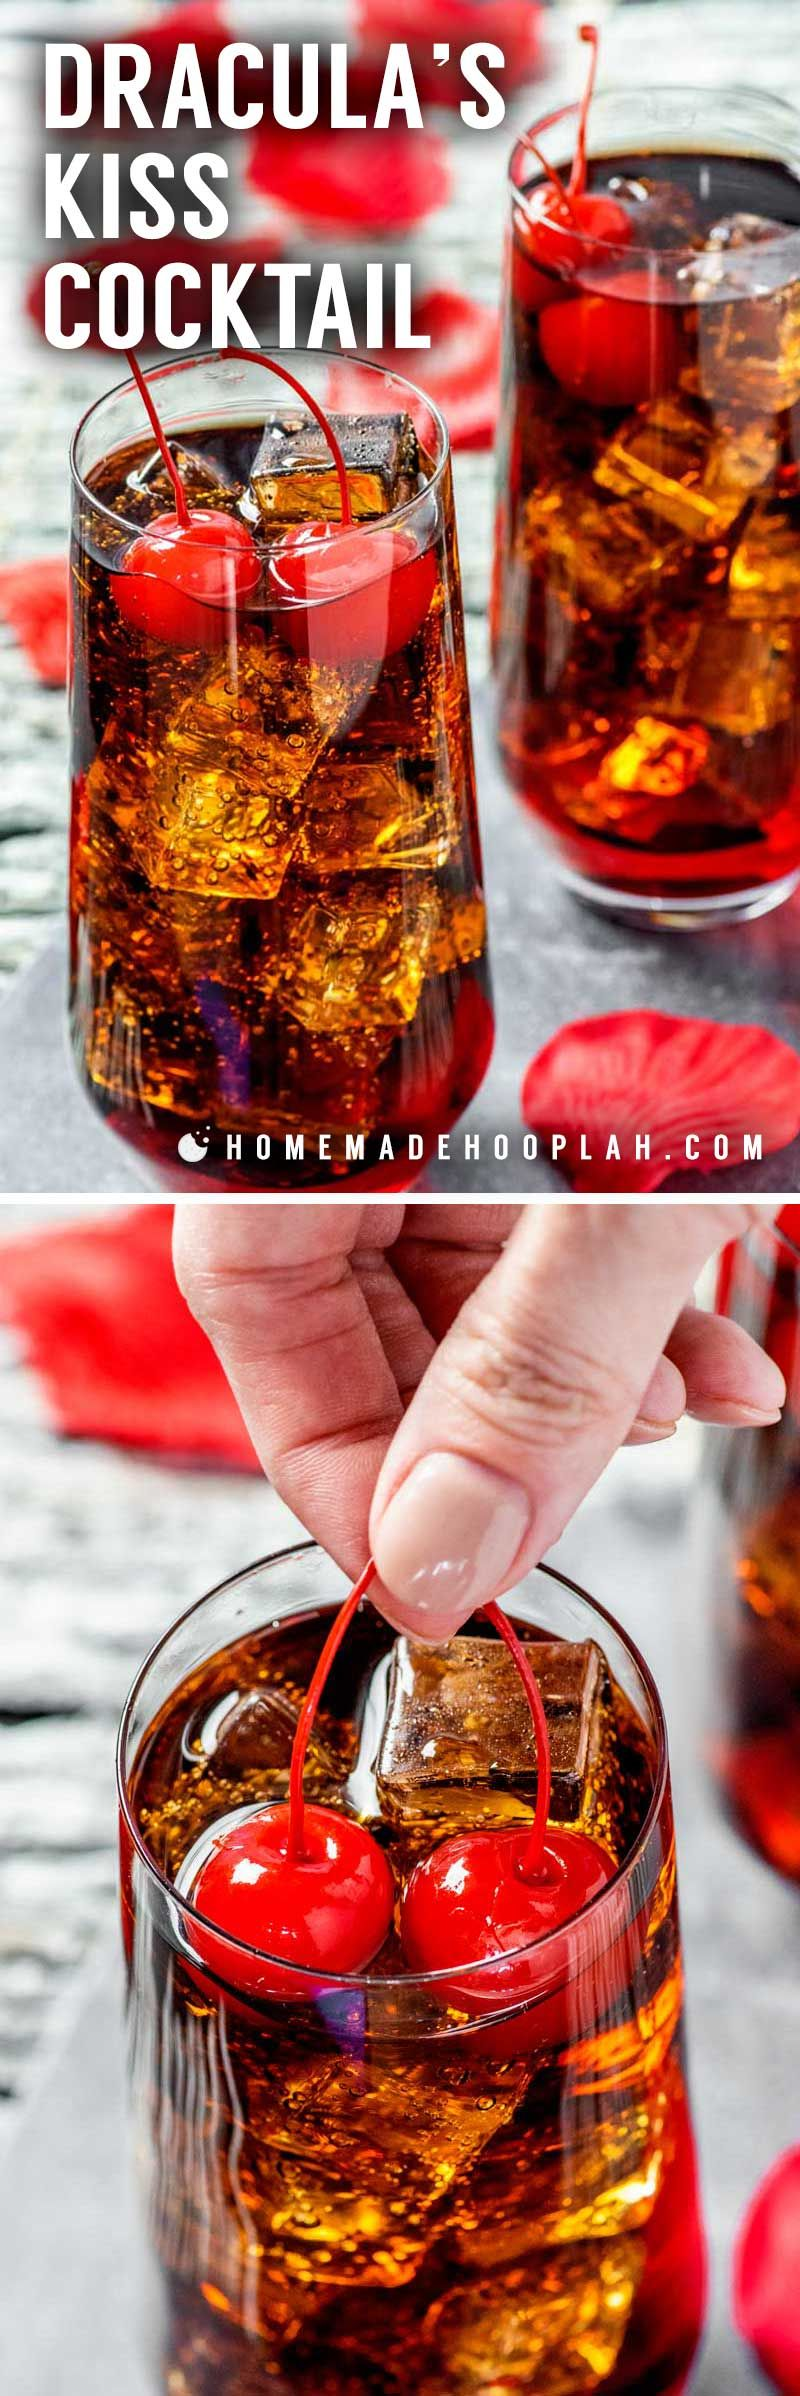 Dracula S Kiss Cocktail A Vampire Twist On A Classic Drink This Dracula S Kiss Is The Spoo Alcohol Drink Recipes Cherry Vodka Drinks Halloween Drinks Alcohol